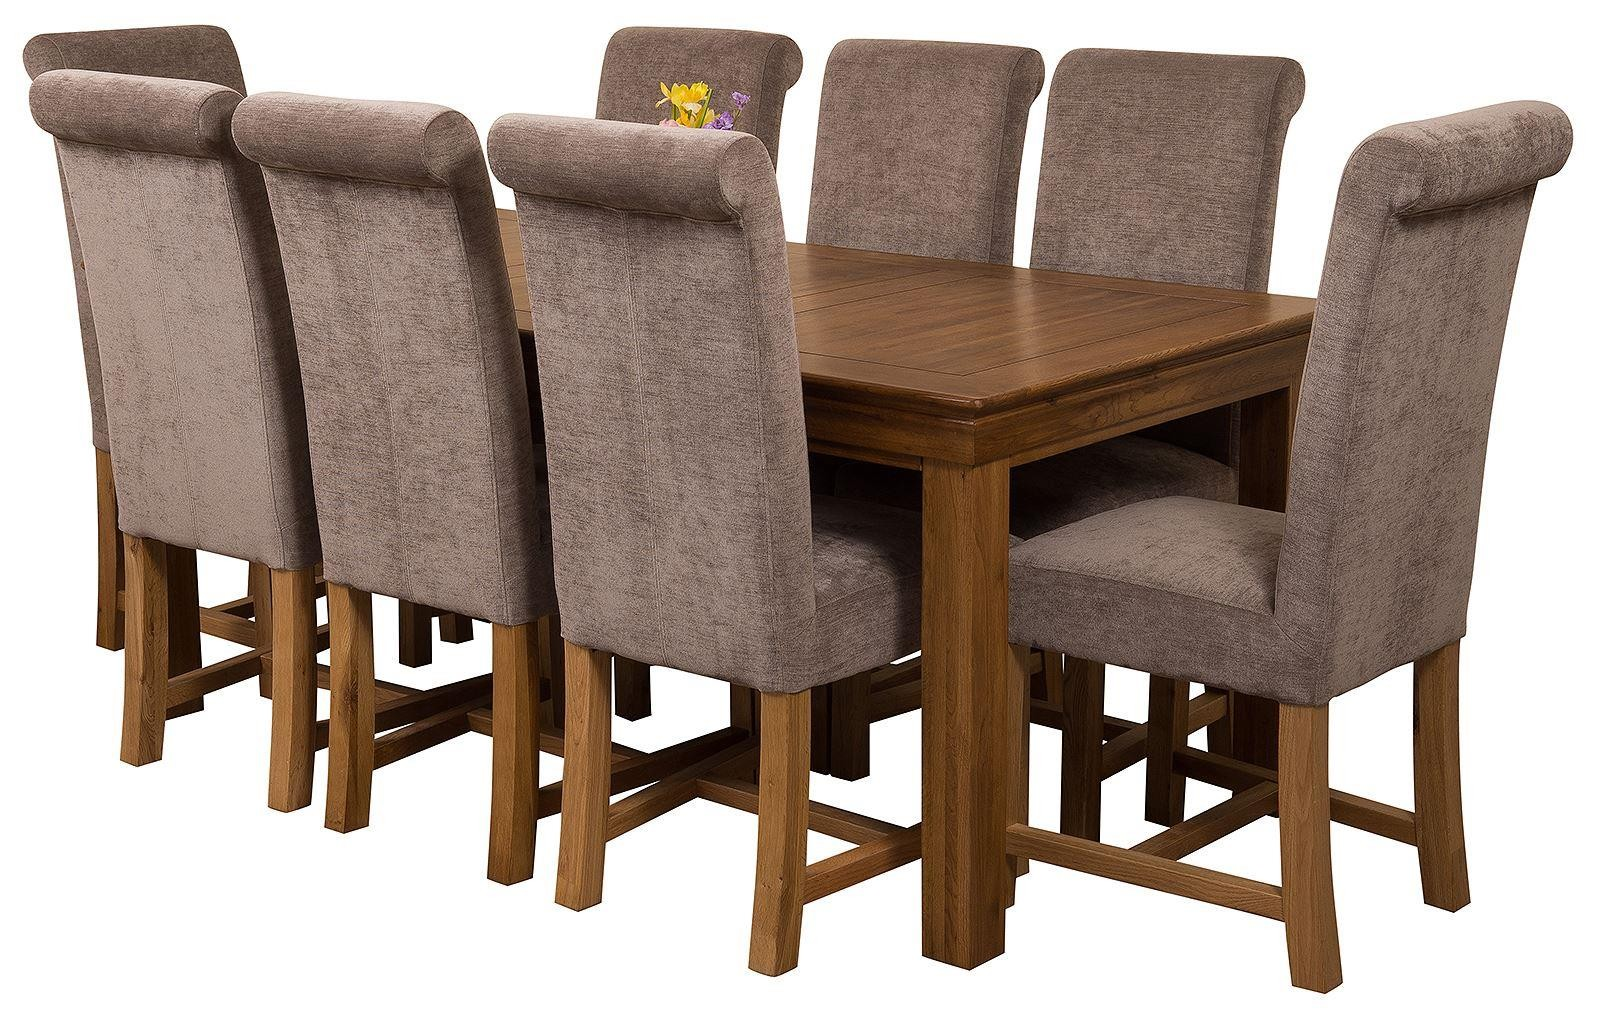 French Chateau Rustic Solid Oak 180cm Dining Table With 8 Washington